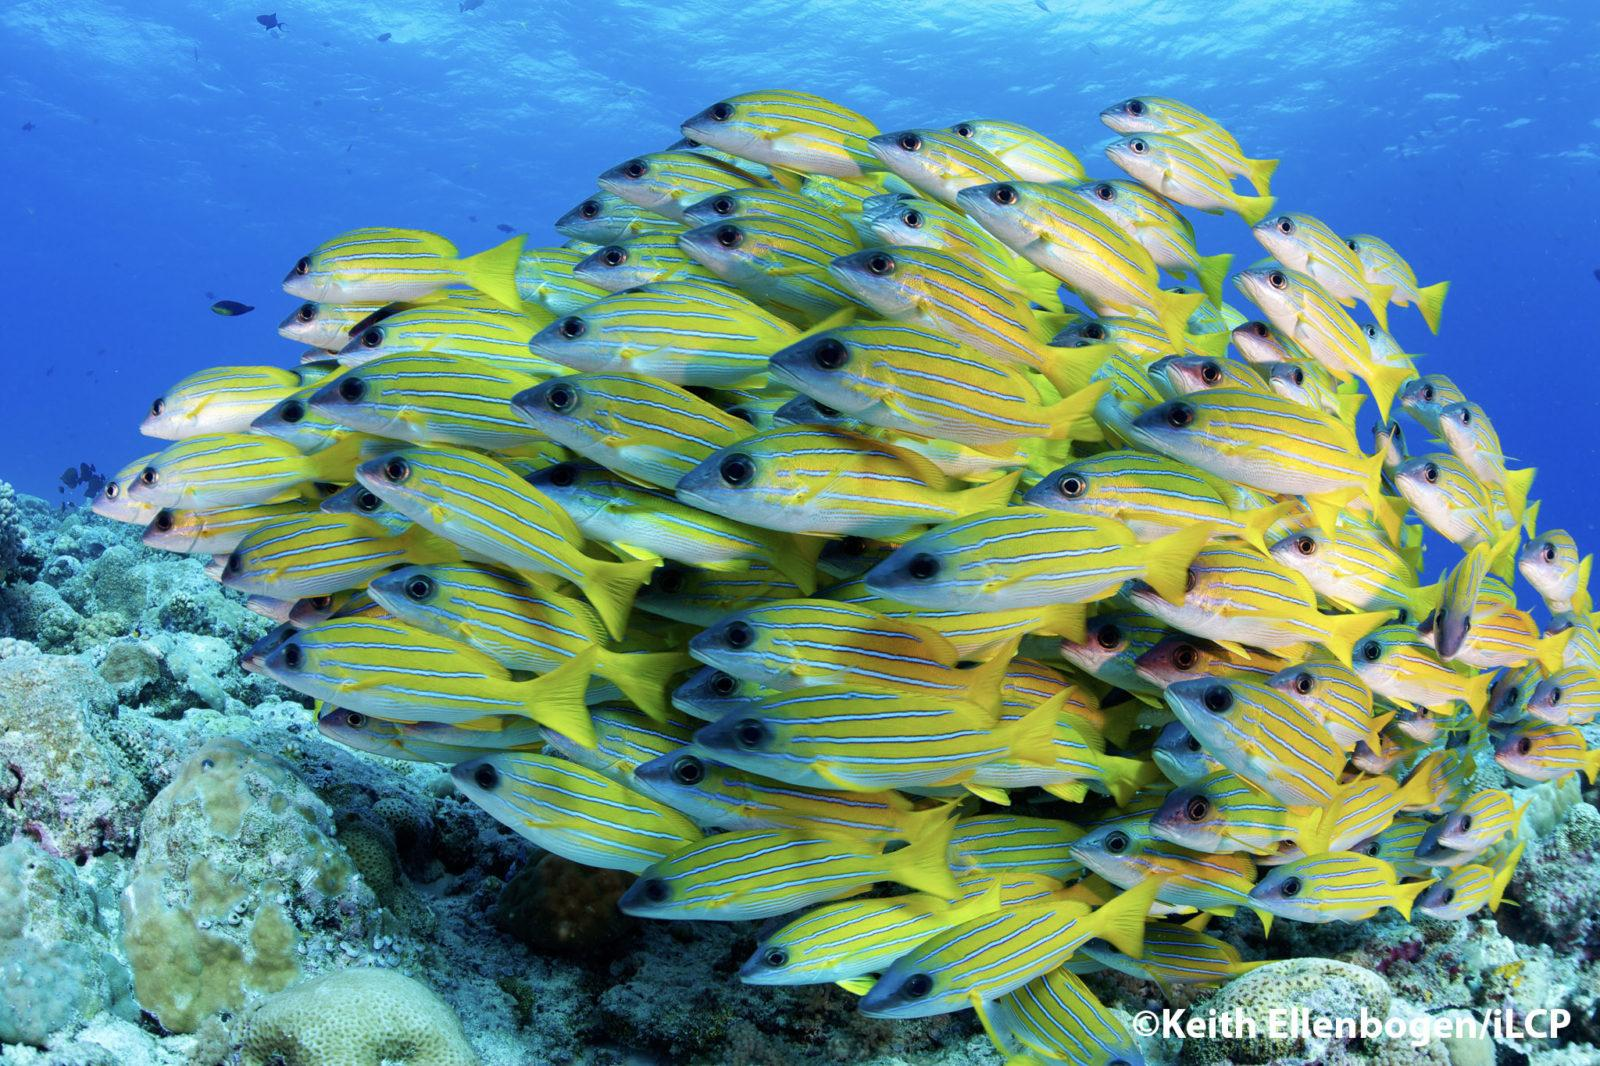 A school of Bluestripe Snapper swim close together and form a moving ball-like shape.